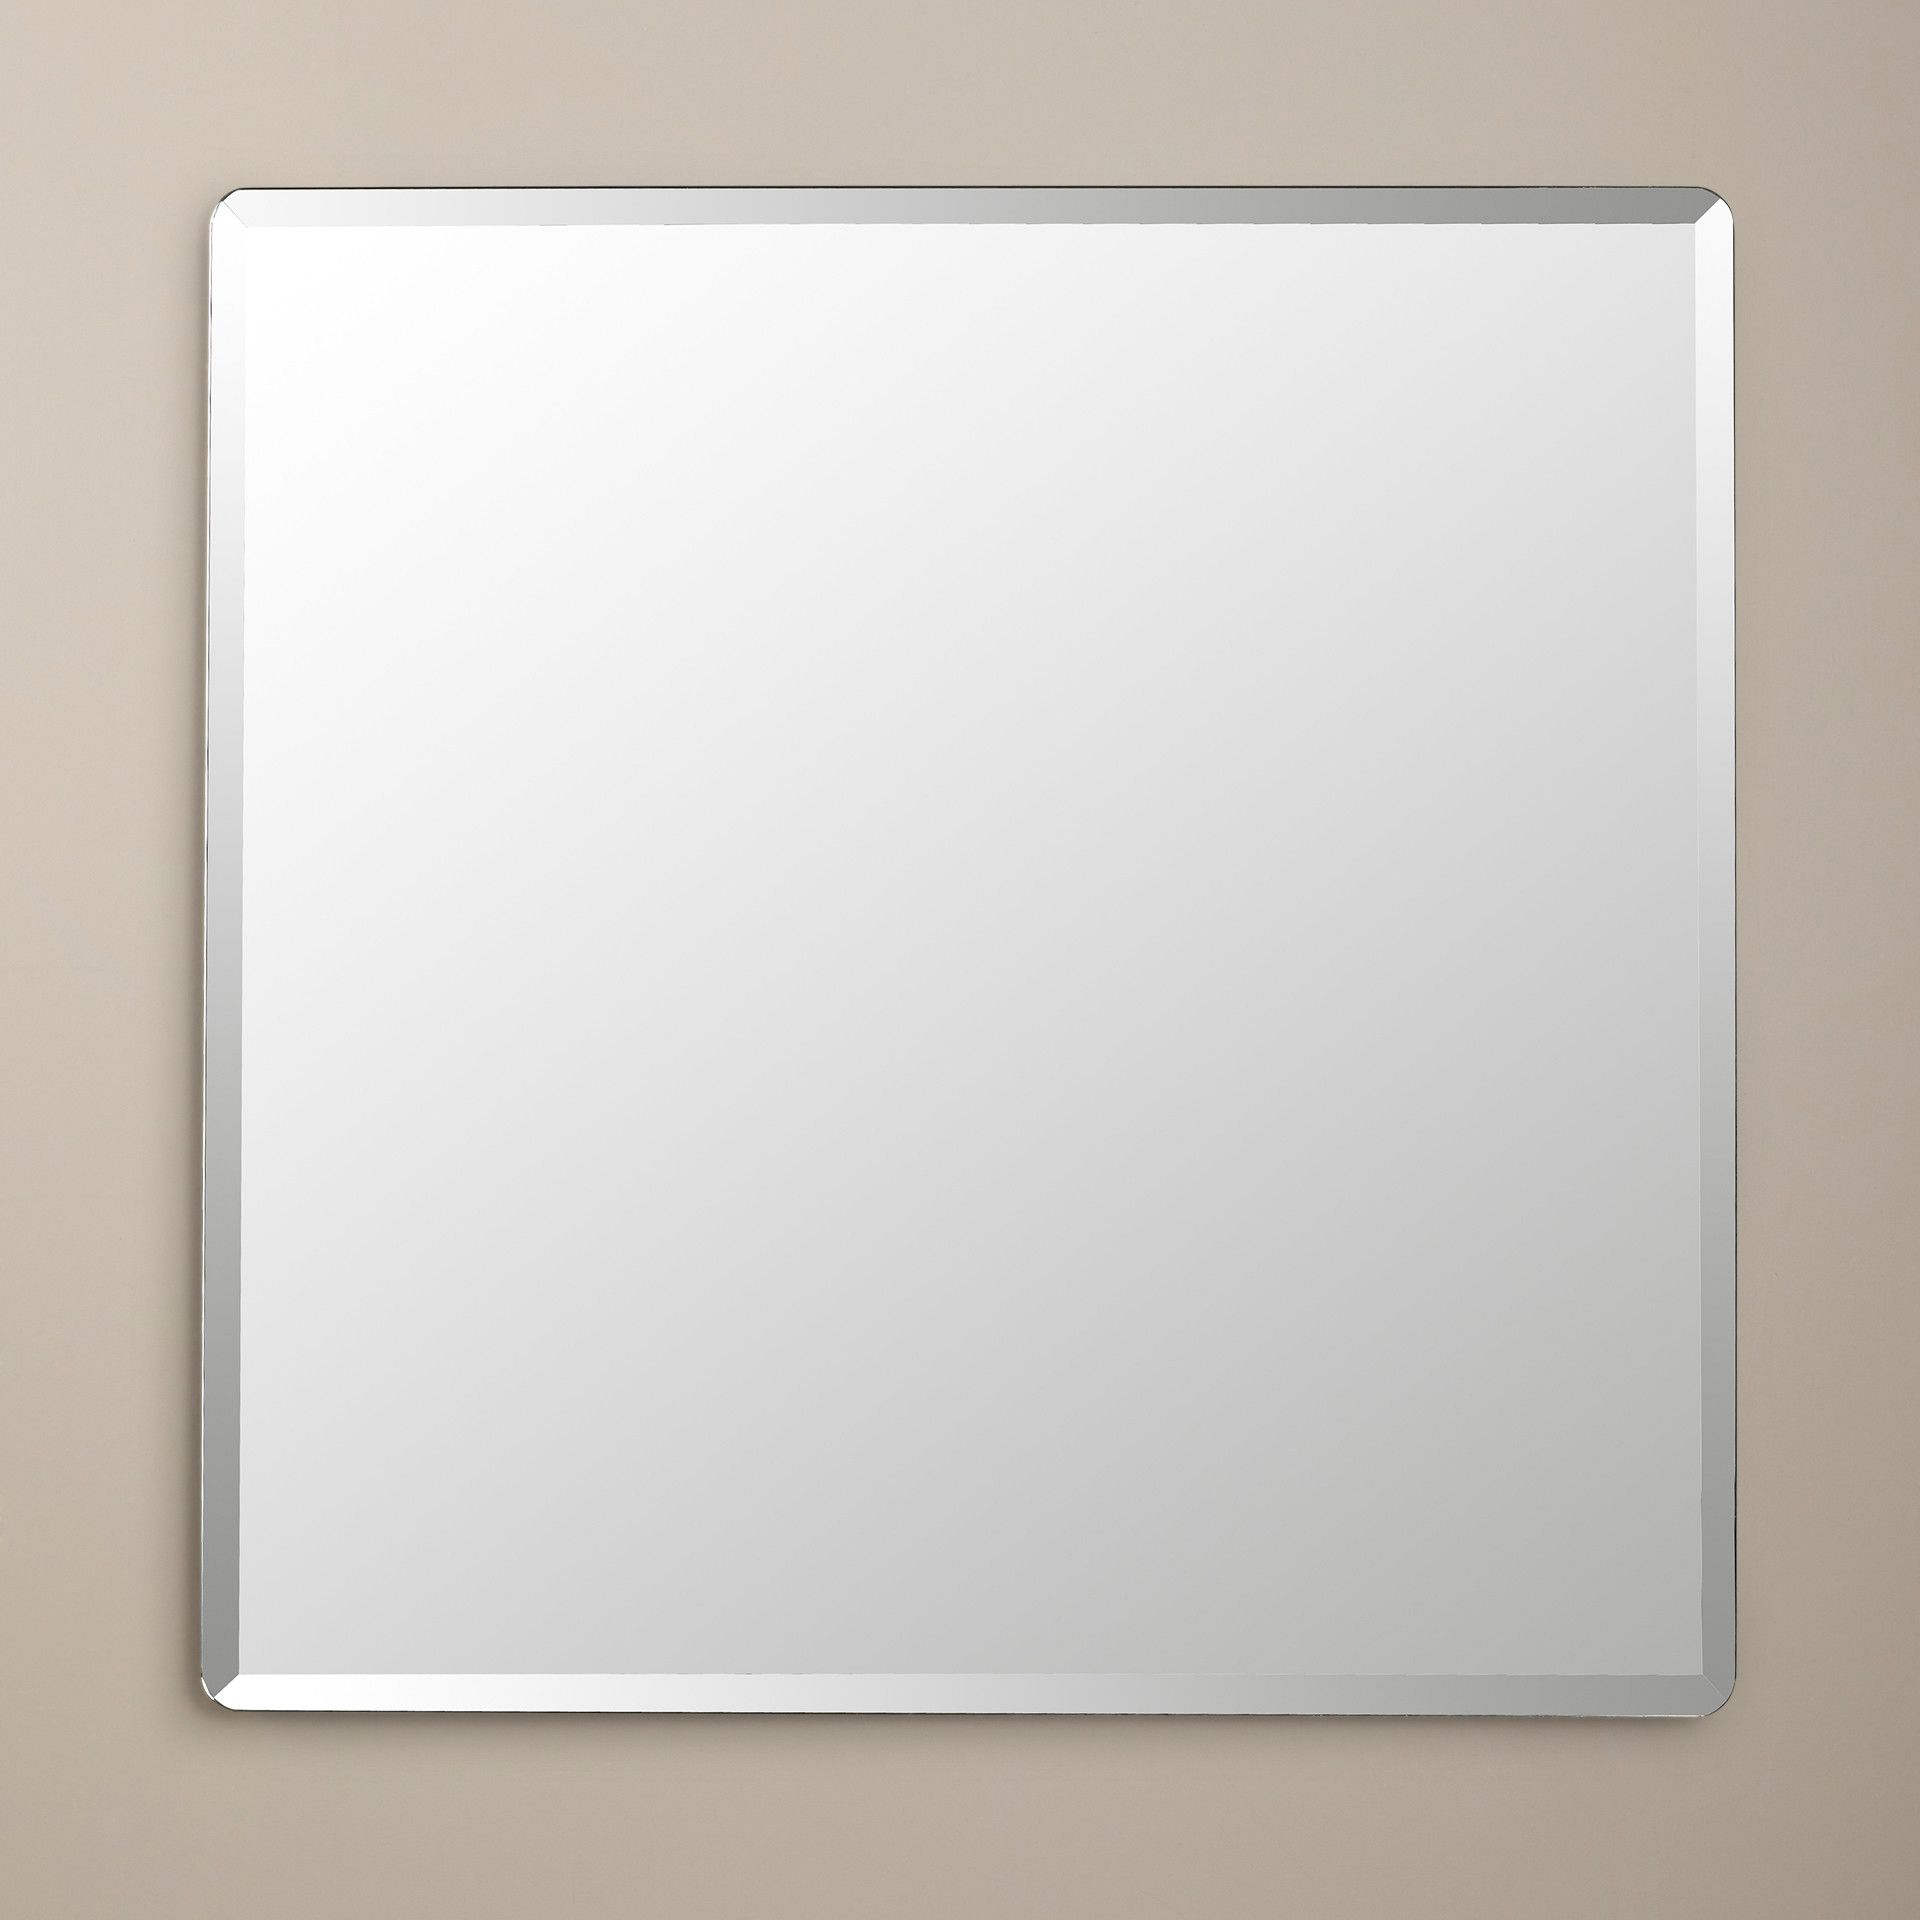 Tetbury Frameless Tri Bevel Wall Mirrors Throughout Most Current Wade Logan® Kayden Frameless Beveled Wall Mirror – Possible For Boys (View 9 of 20)